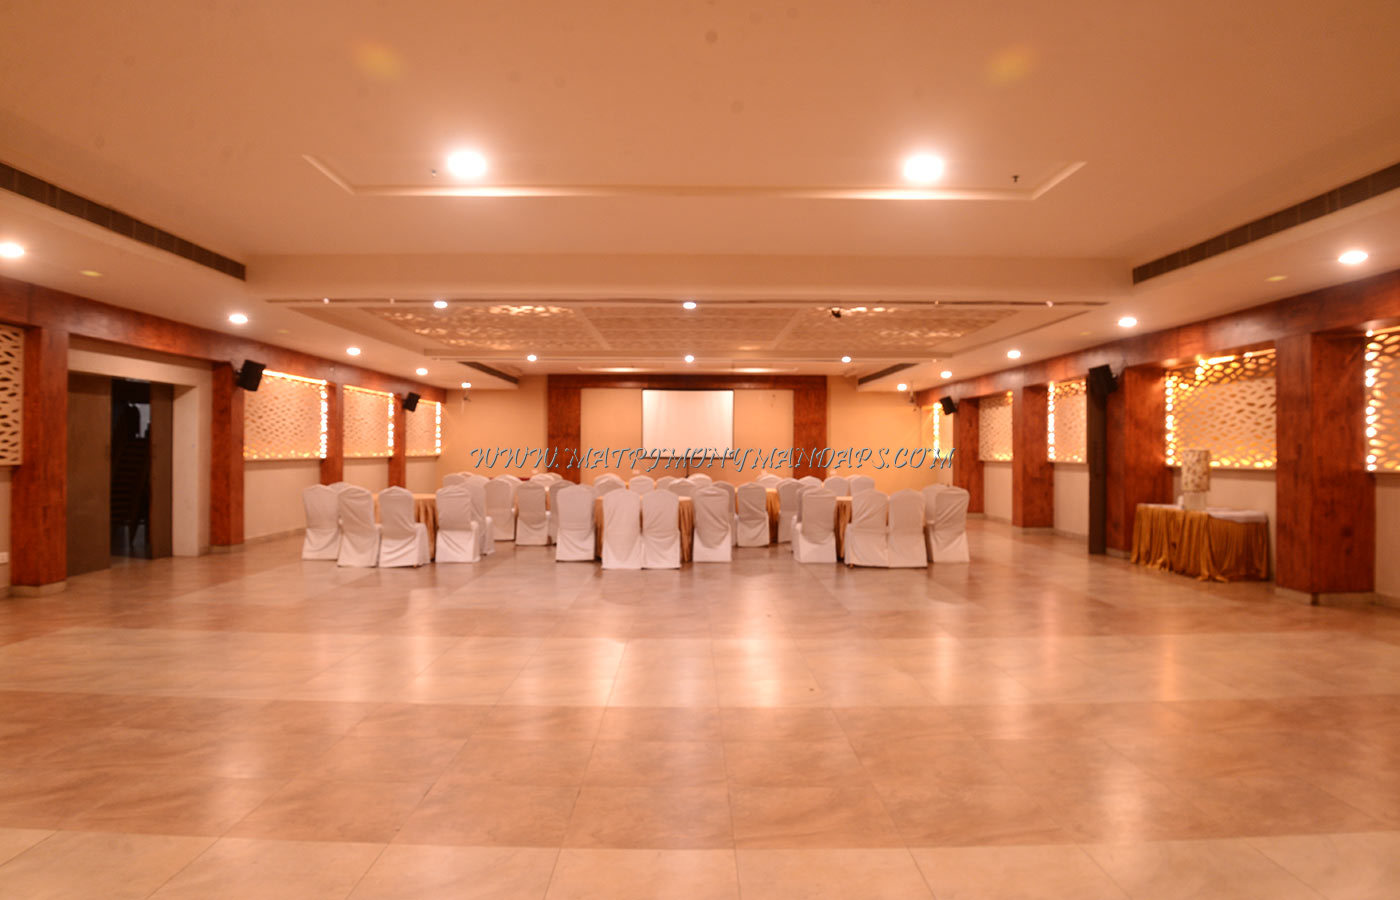 Find the availability of the Hotel Vijay Elanza (A/C) in Peelamedu, Coimbatore and avail special offers